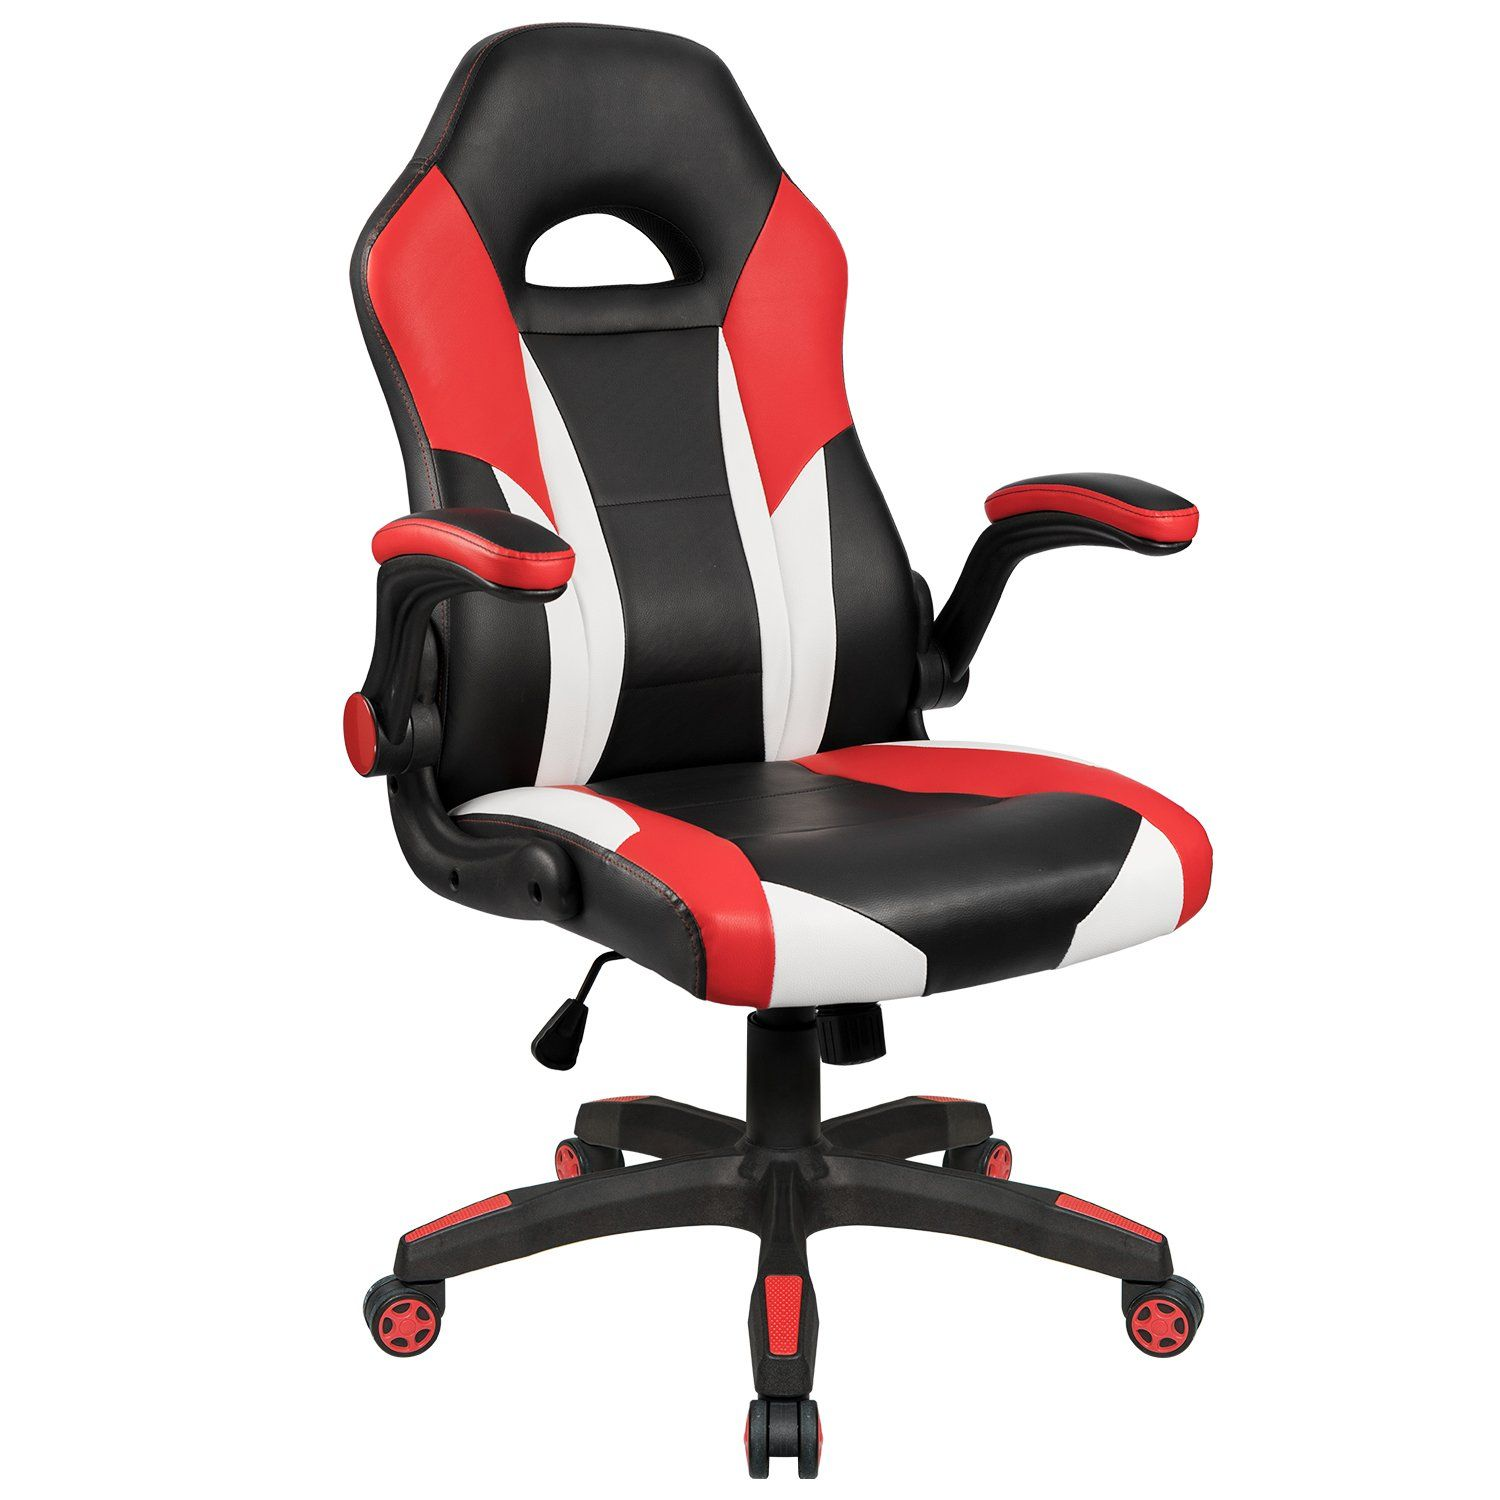 Homall Gaming Chair Office Computer Chair Racing Desk Chair Ergonomic High Back Adjustable Swivel C Ergonomic Computer Chair Computer Desk Chair Computer Chair